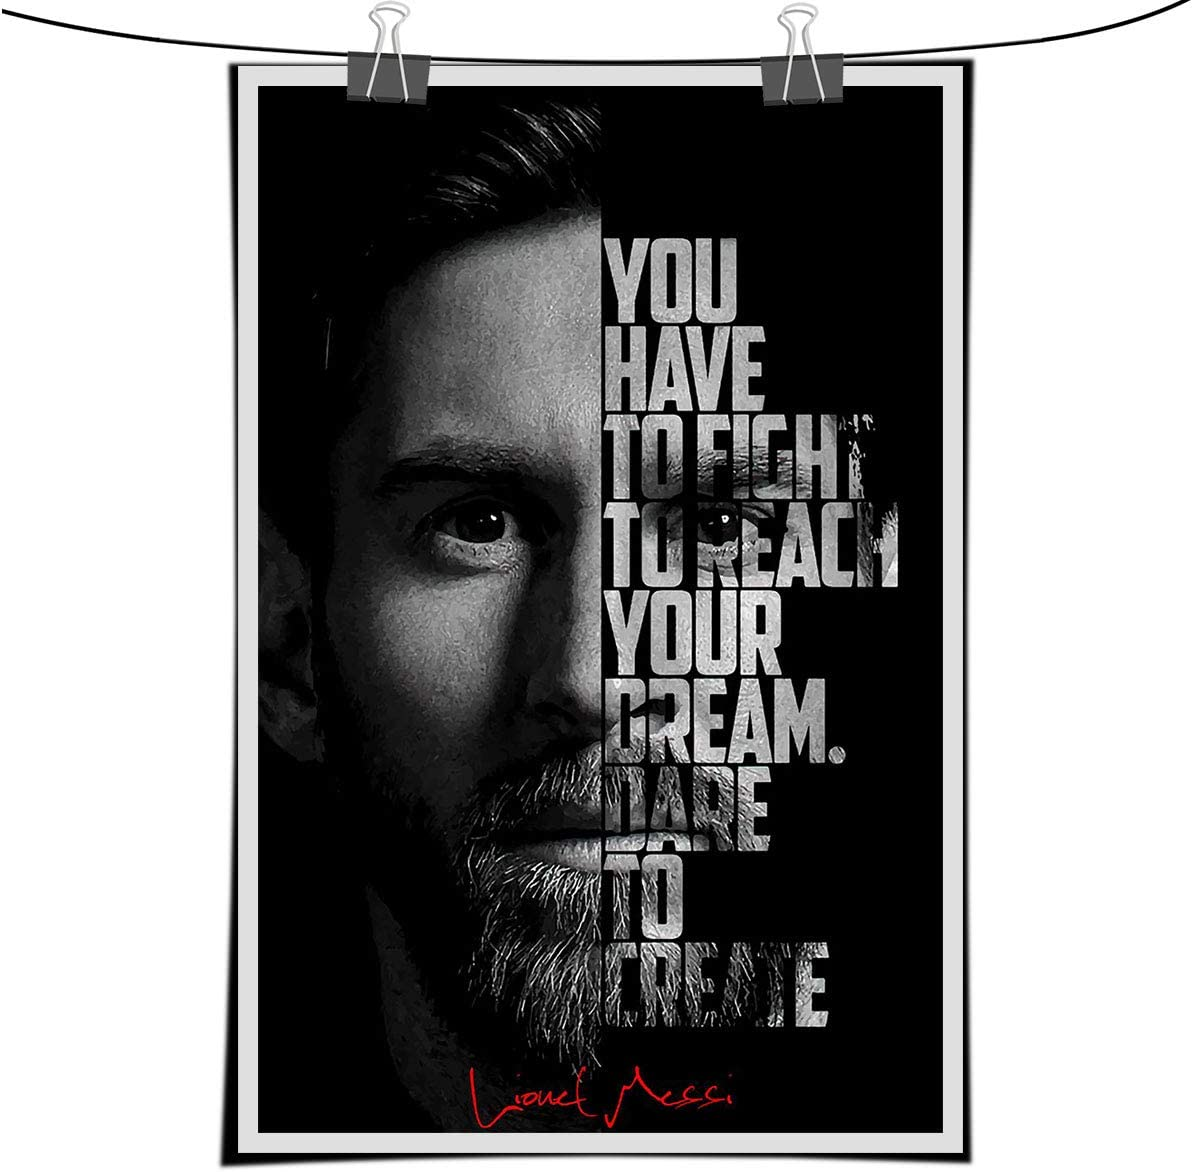 Lionel Messi Motivational Quote Wall Art Pictures Canvas Painting Nordic Inspirational Posters Prints Home Decor (1,20x28 inch-no frame)